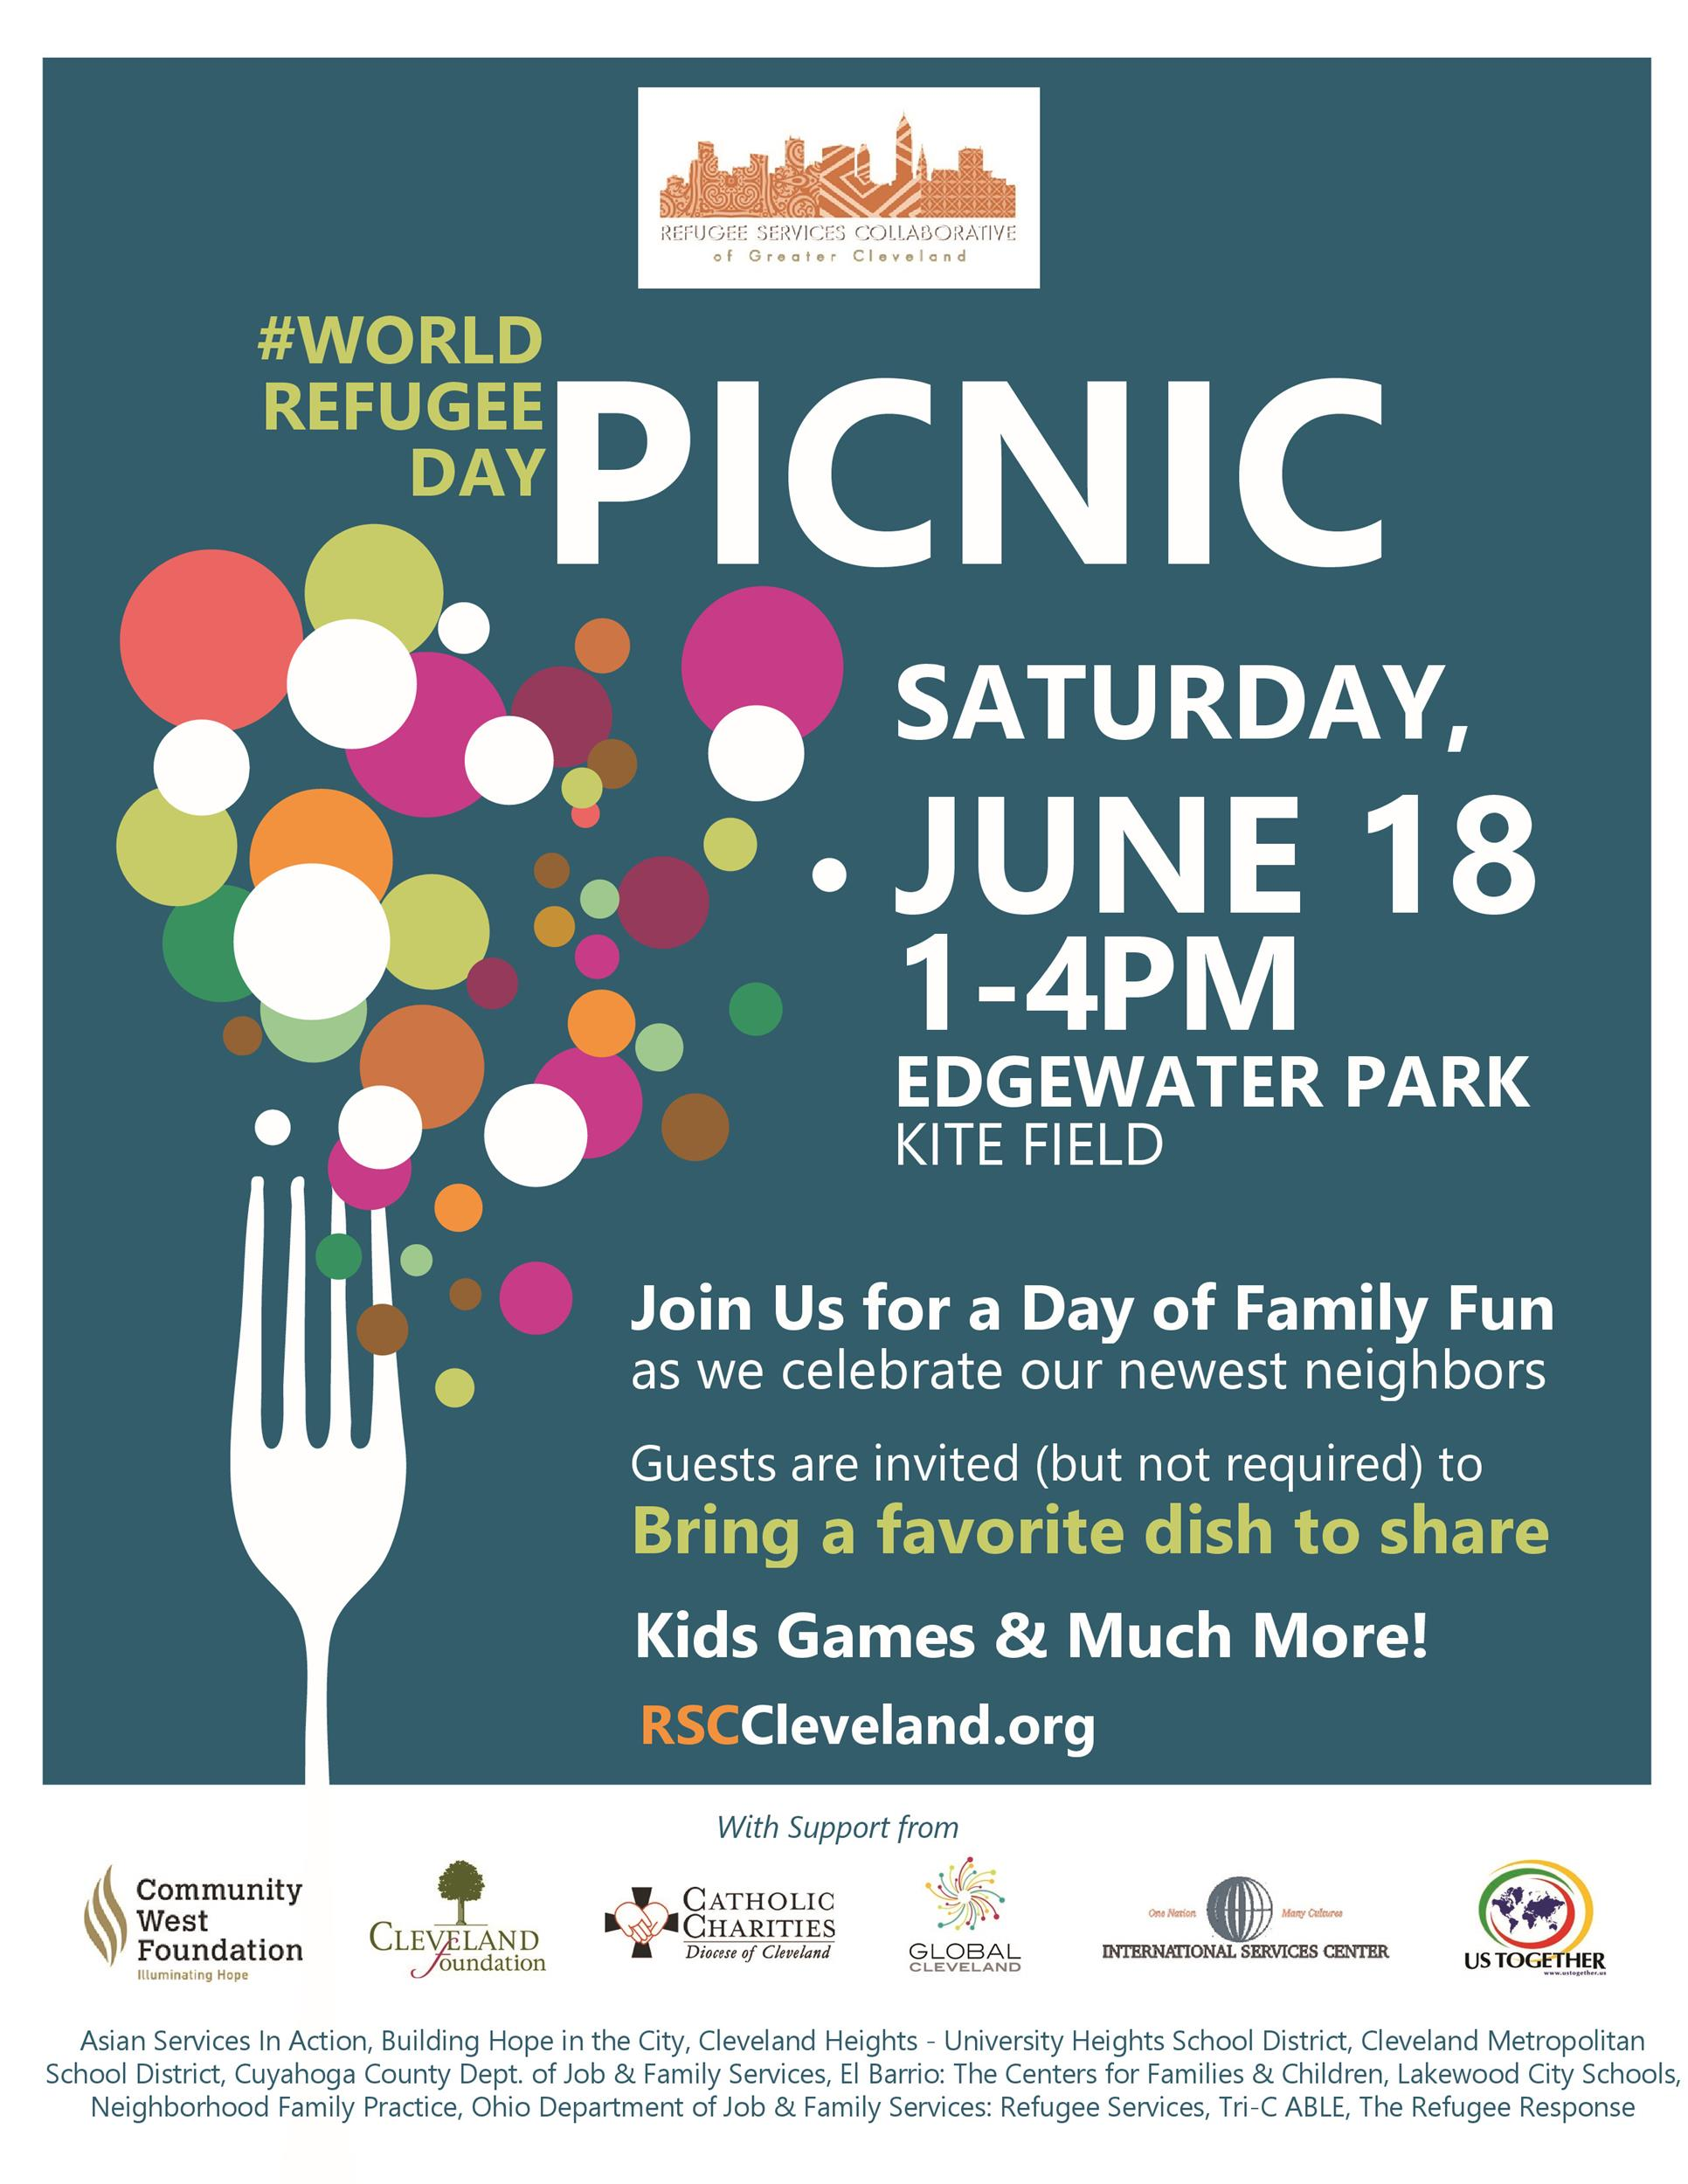 Free picnic flyer template 01